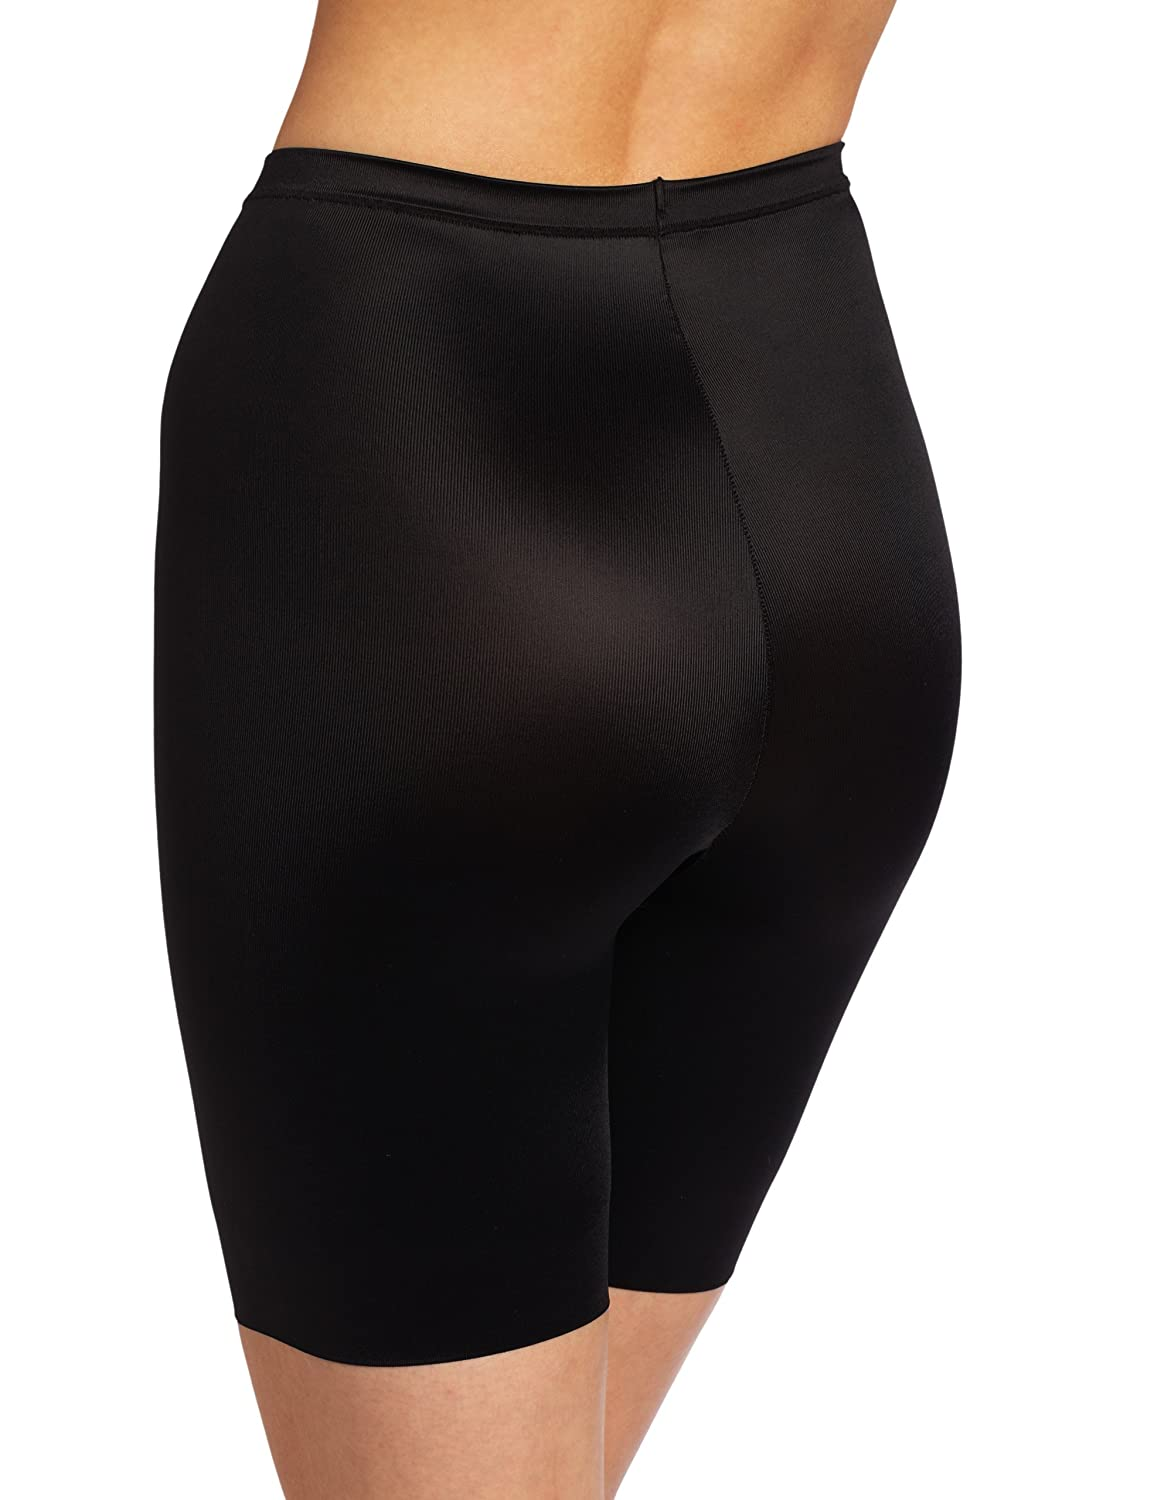 Flexees by Maidenform Womens Adjusts To Me Everyday Control Thigh Slimmer